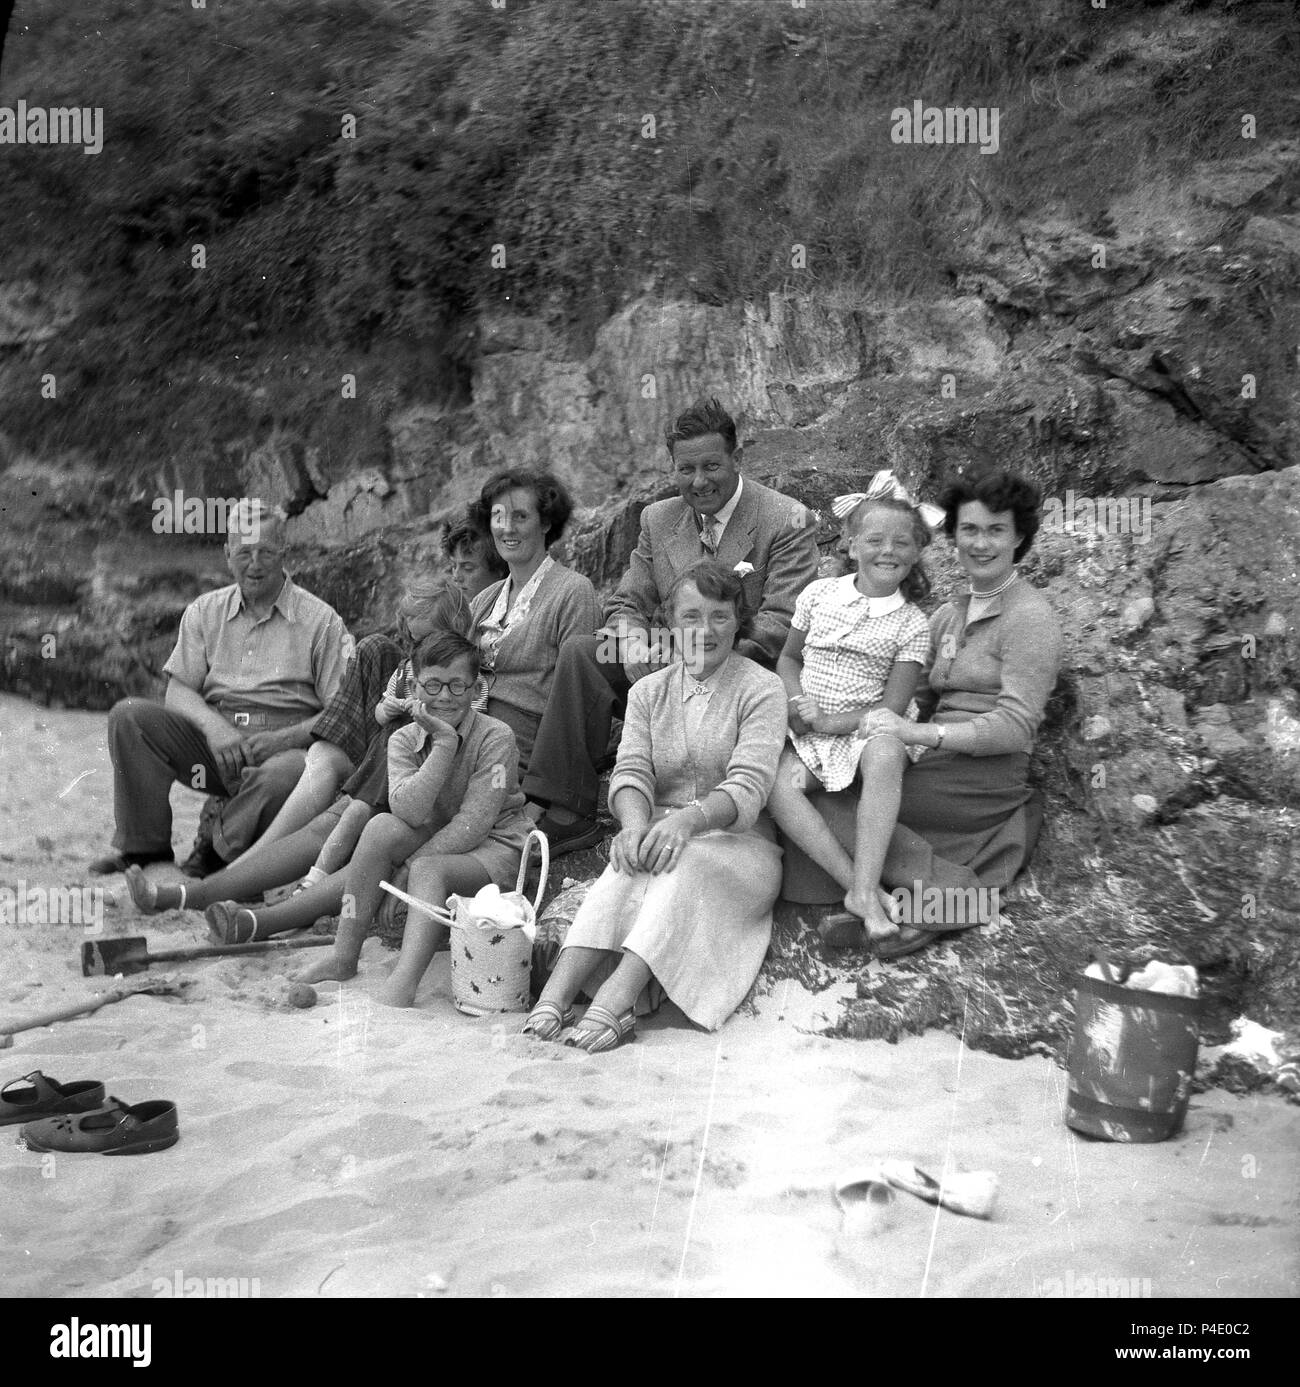 1950s, group family photo by some rocks on the edge of the beach, England, UK. In this post-war era it was common for different generations to go away to the seaside together. - Stock Image